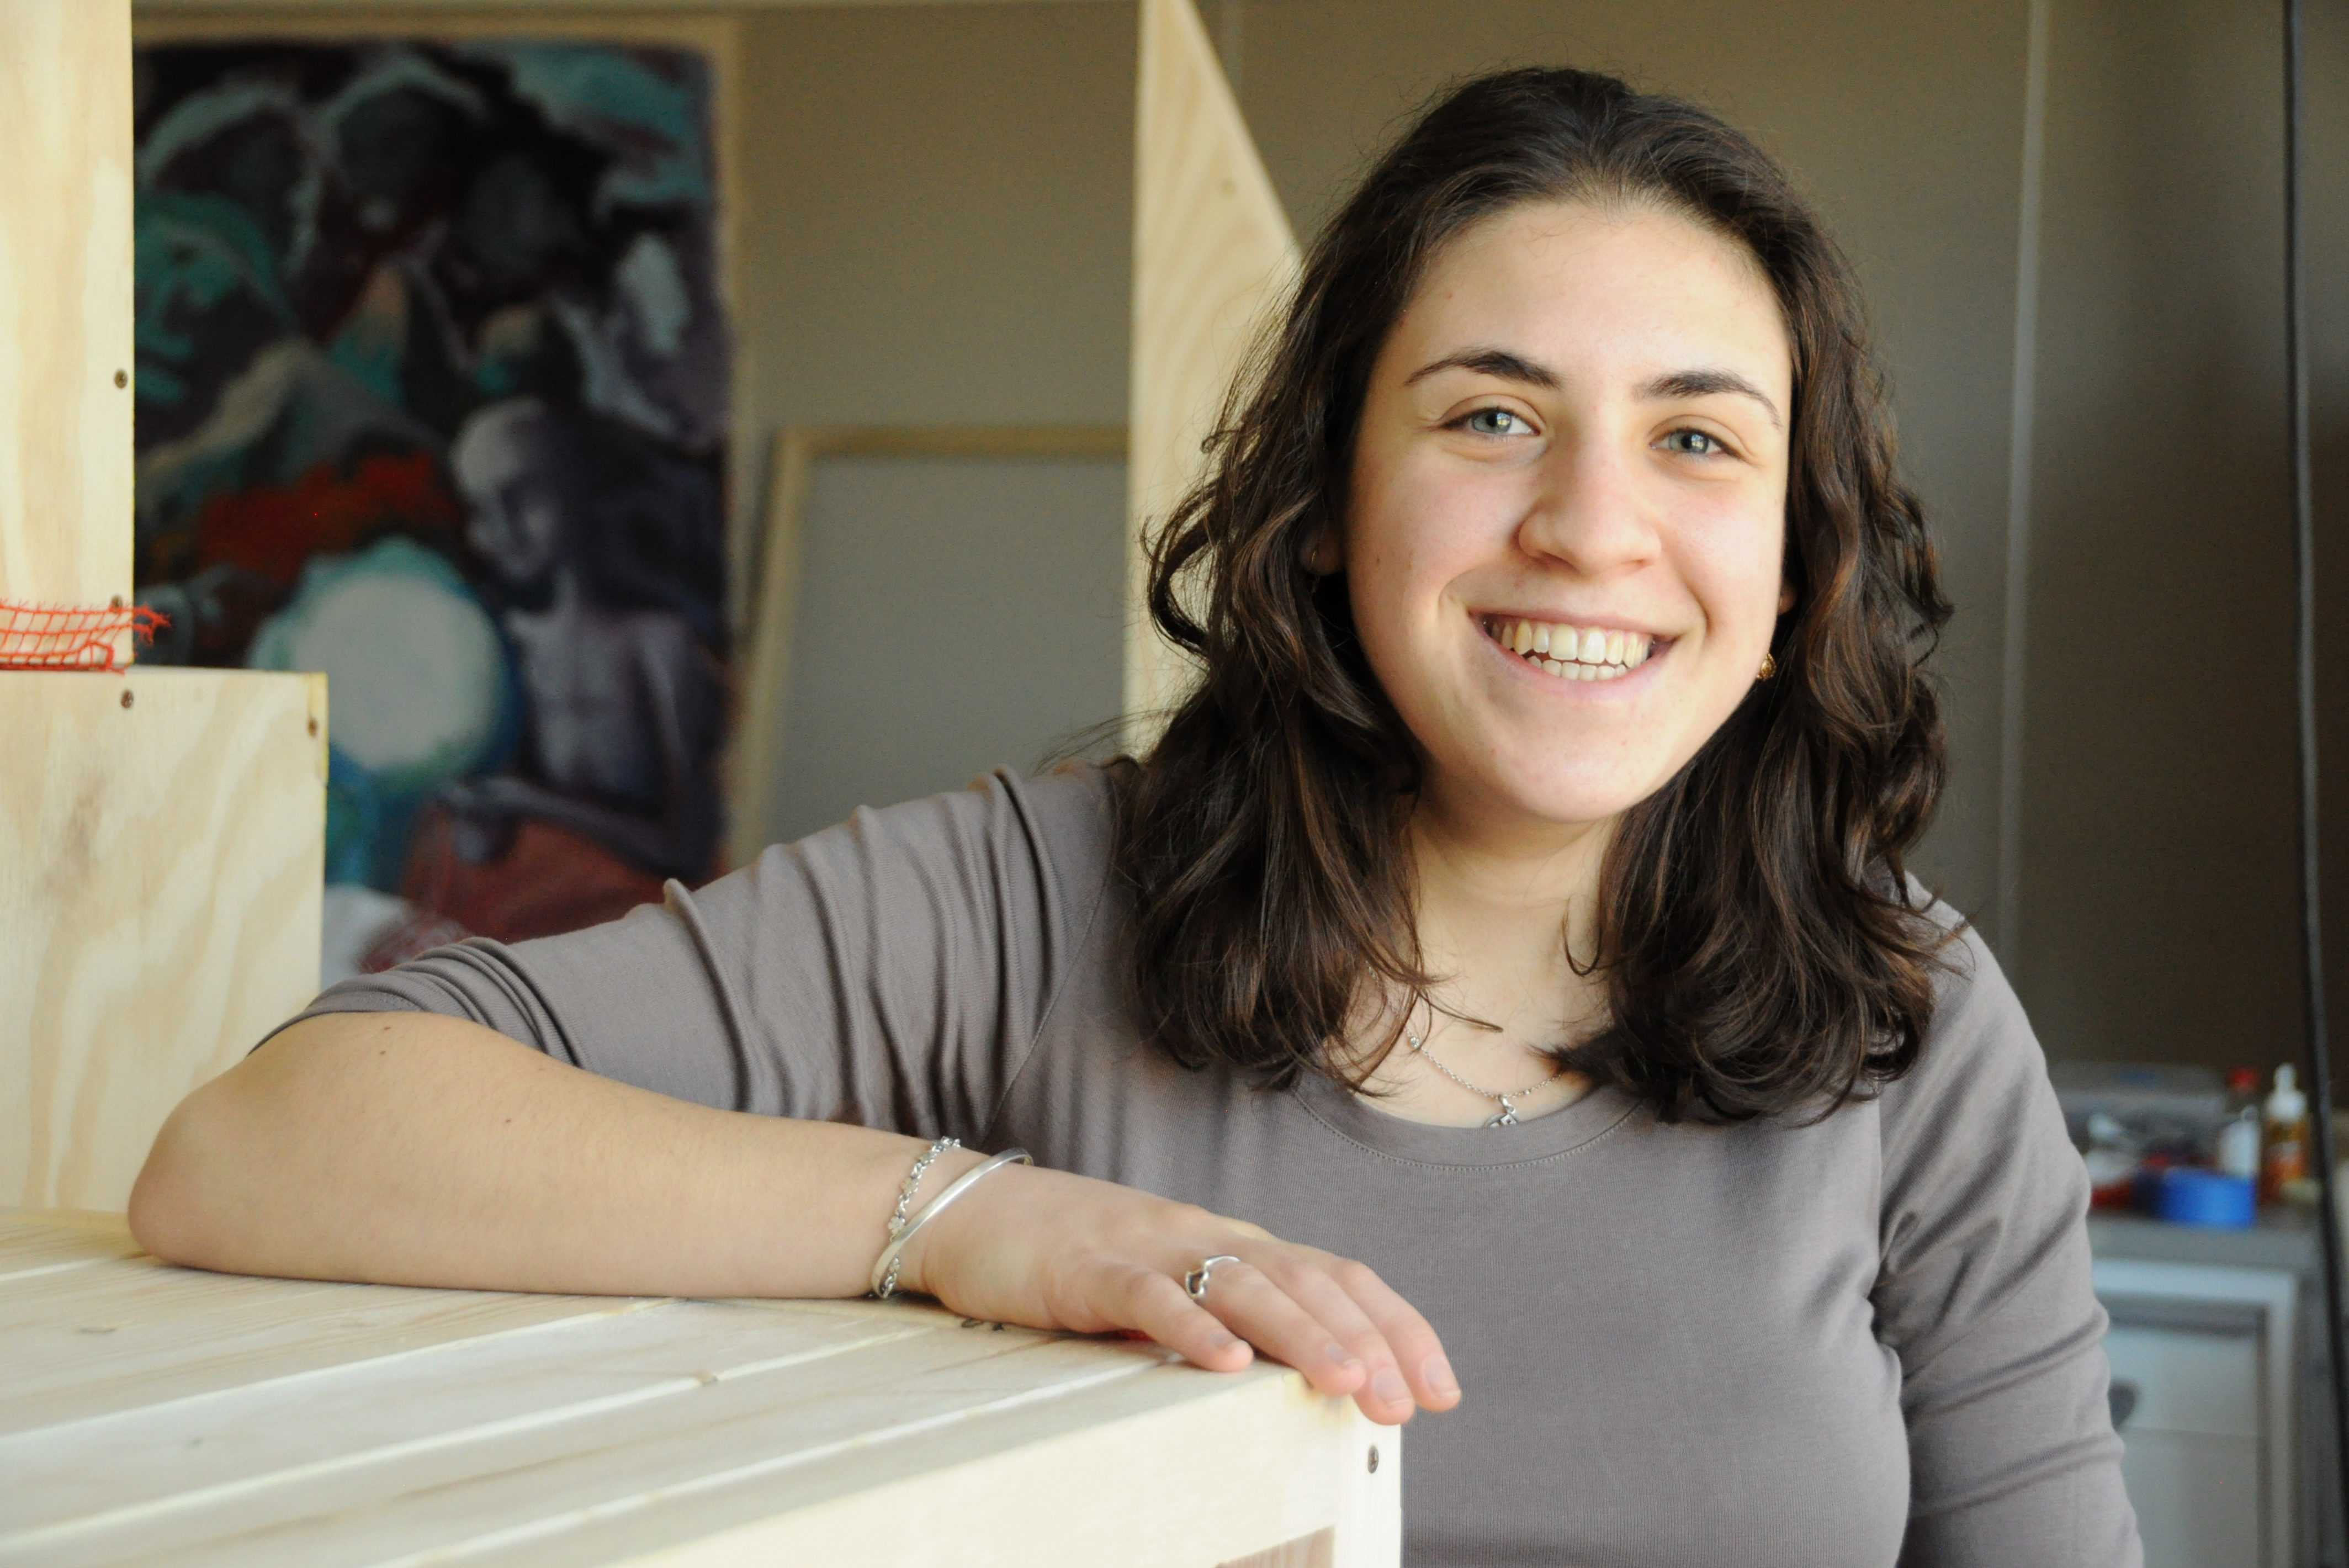 Meet a Mac artist: Julia Eshaghpour finds inspiration in construction